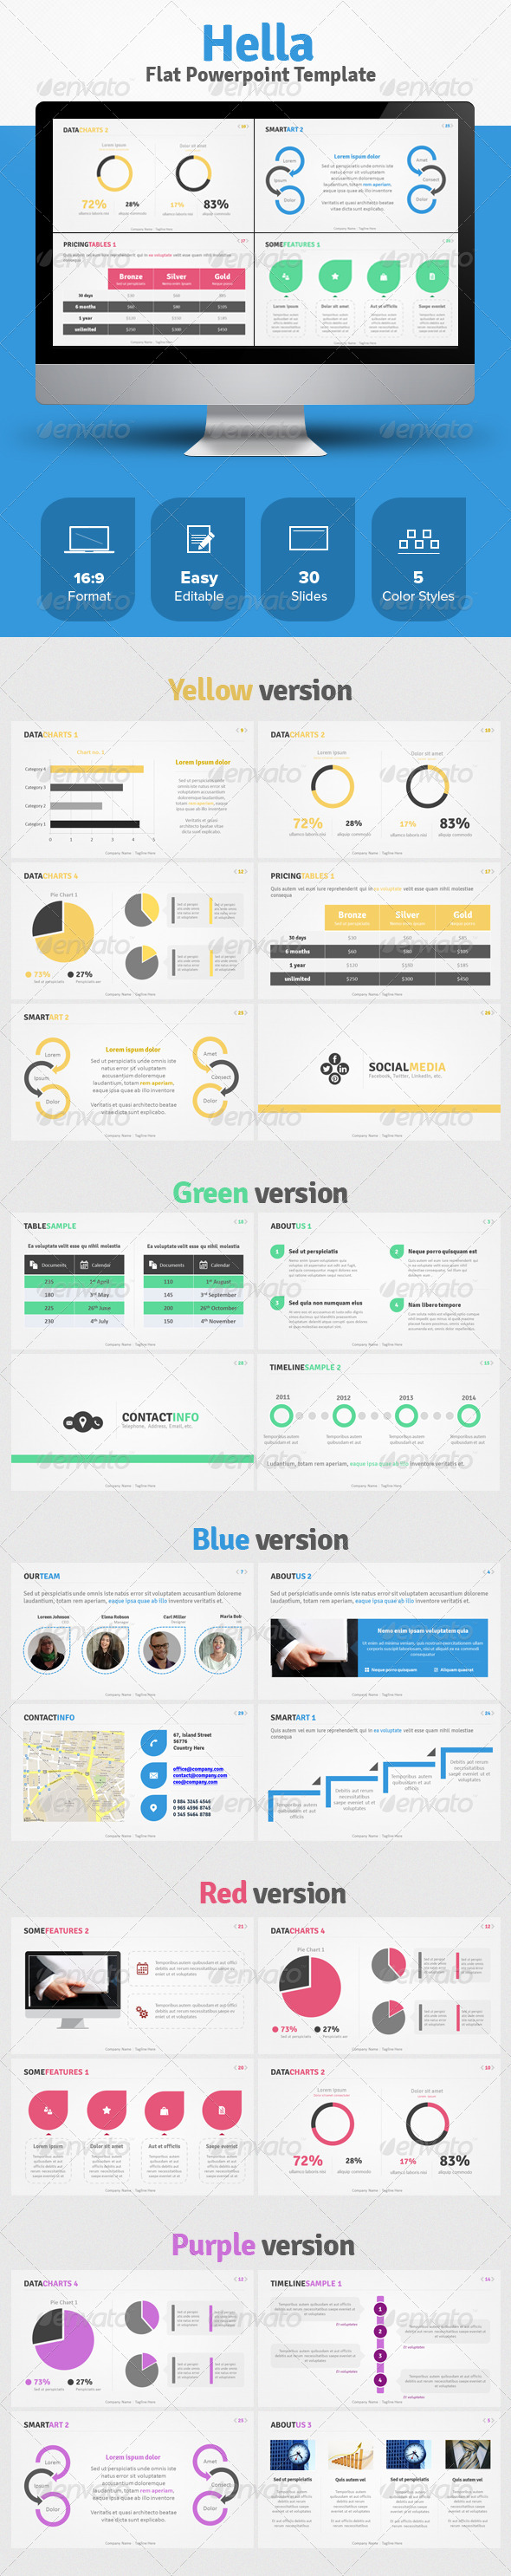 GraphicRiver Hella Flat Powerpoint Template 5871587